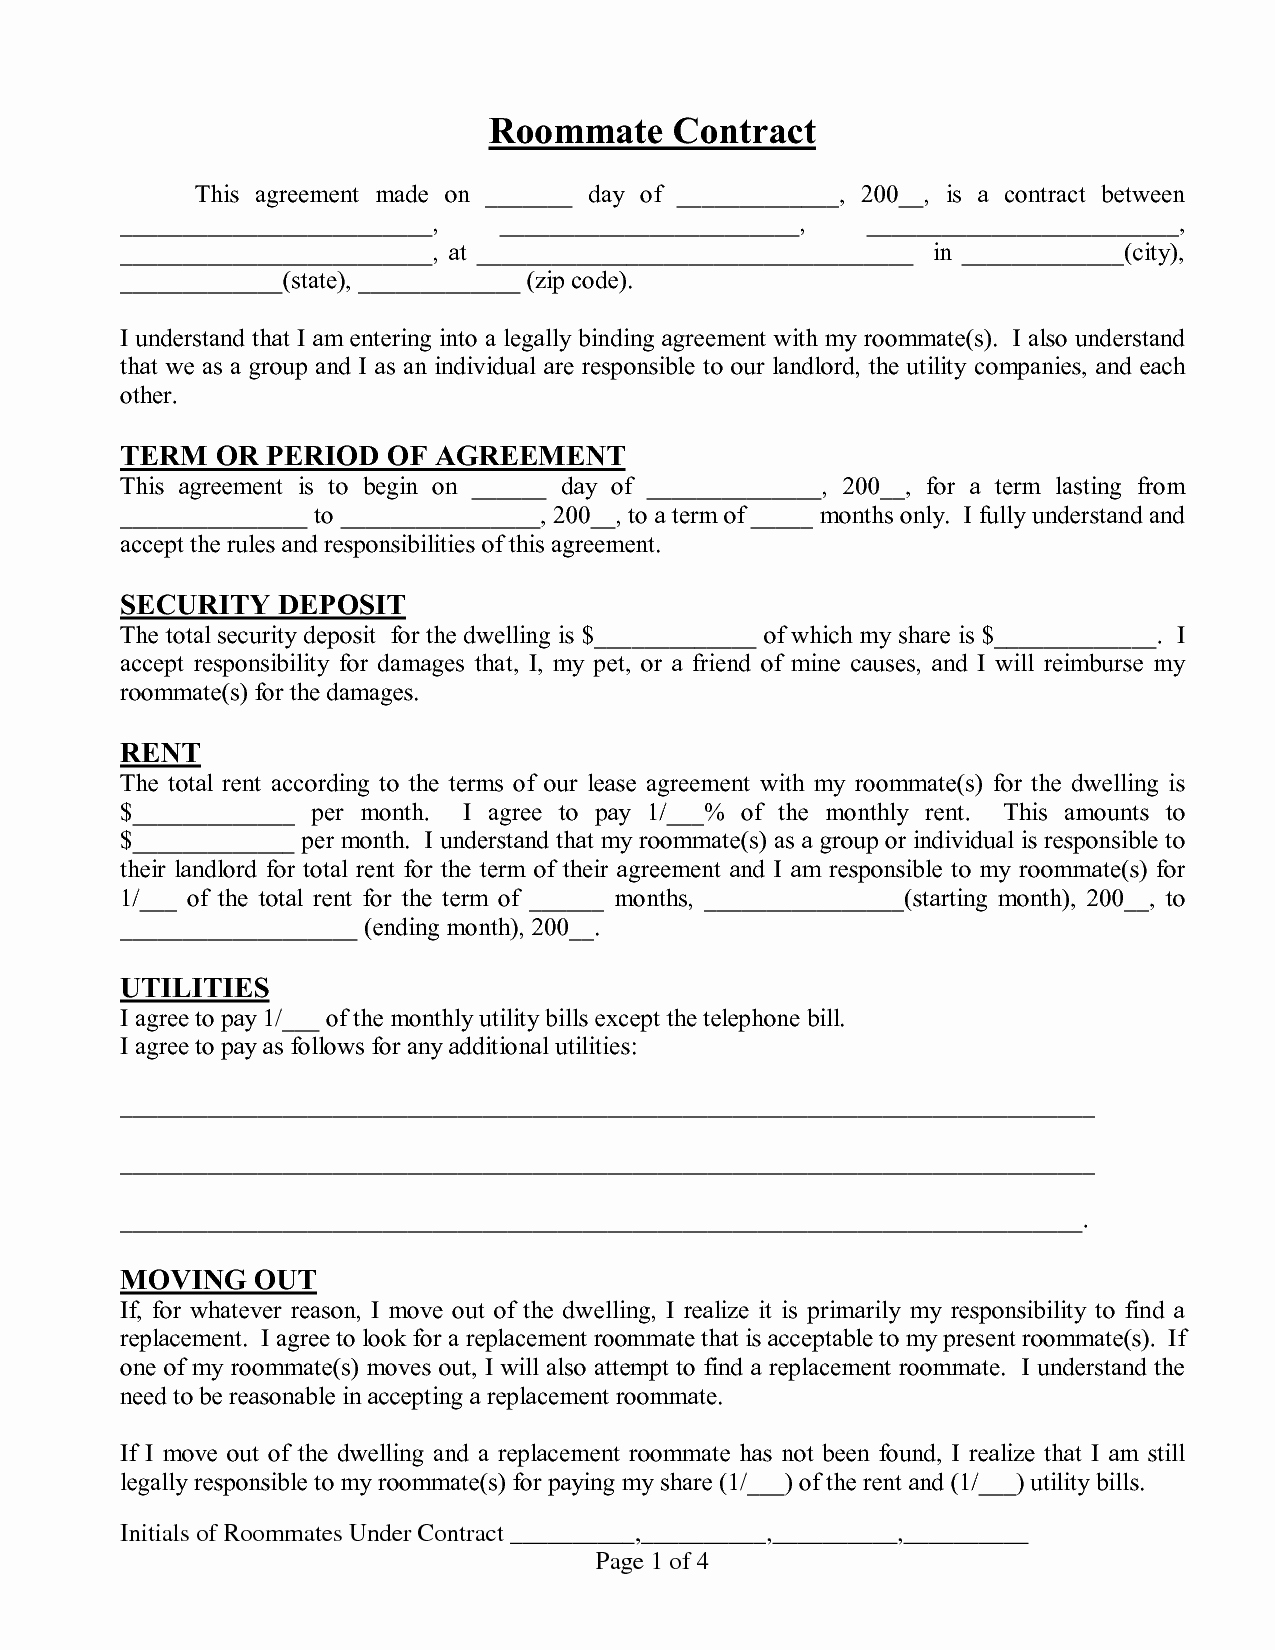 Free Roommate Agreement Template Awesome Roommate Agreement Template